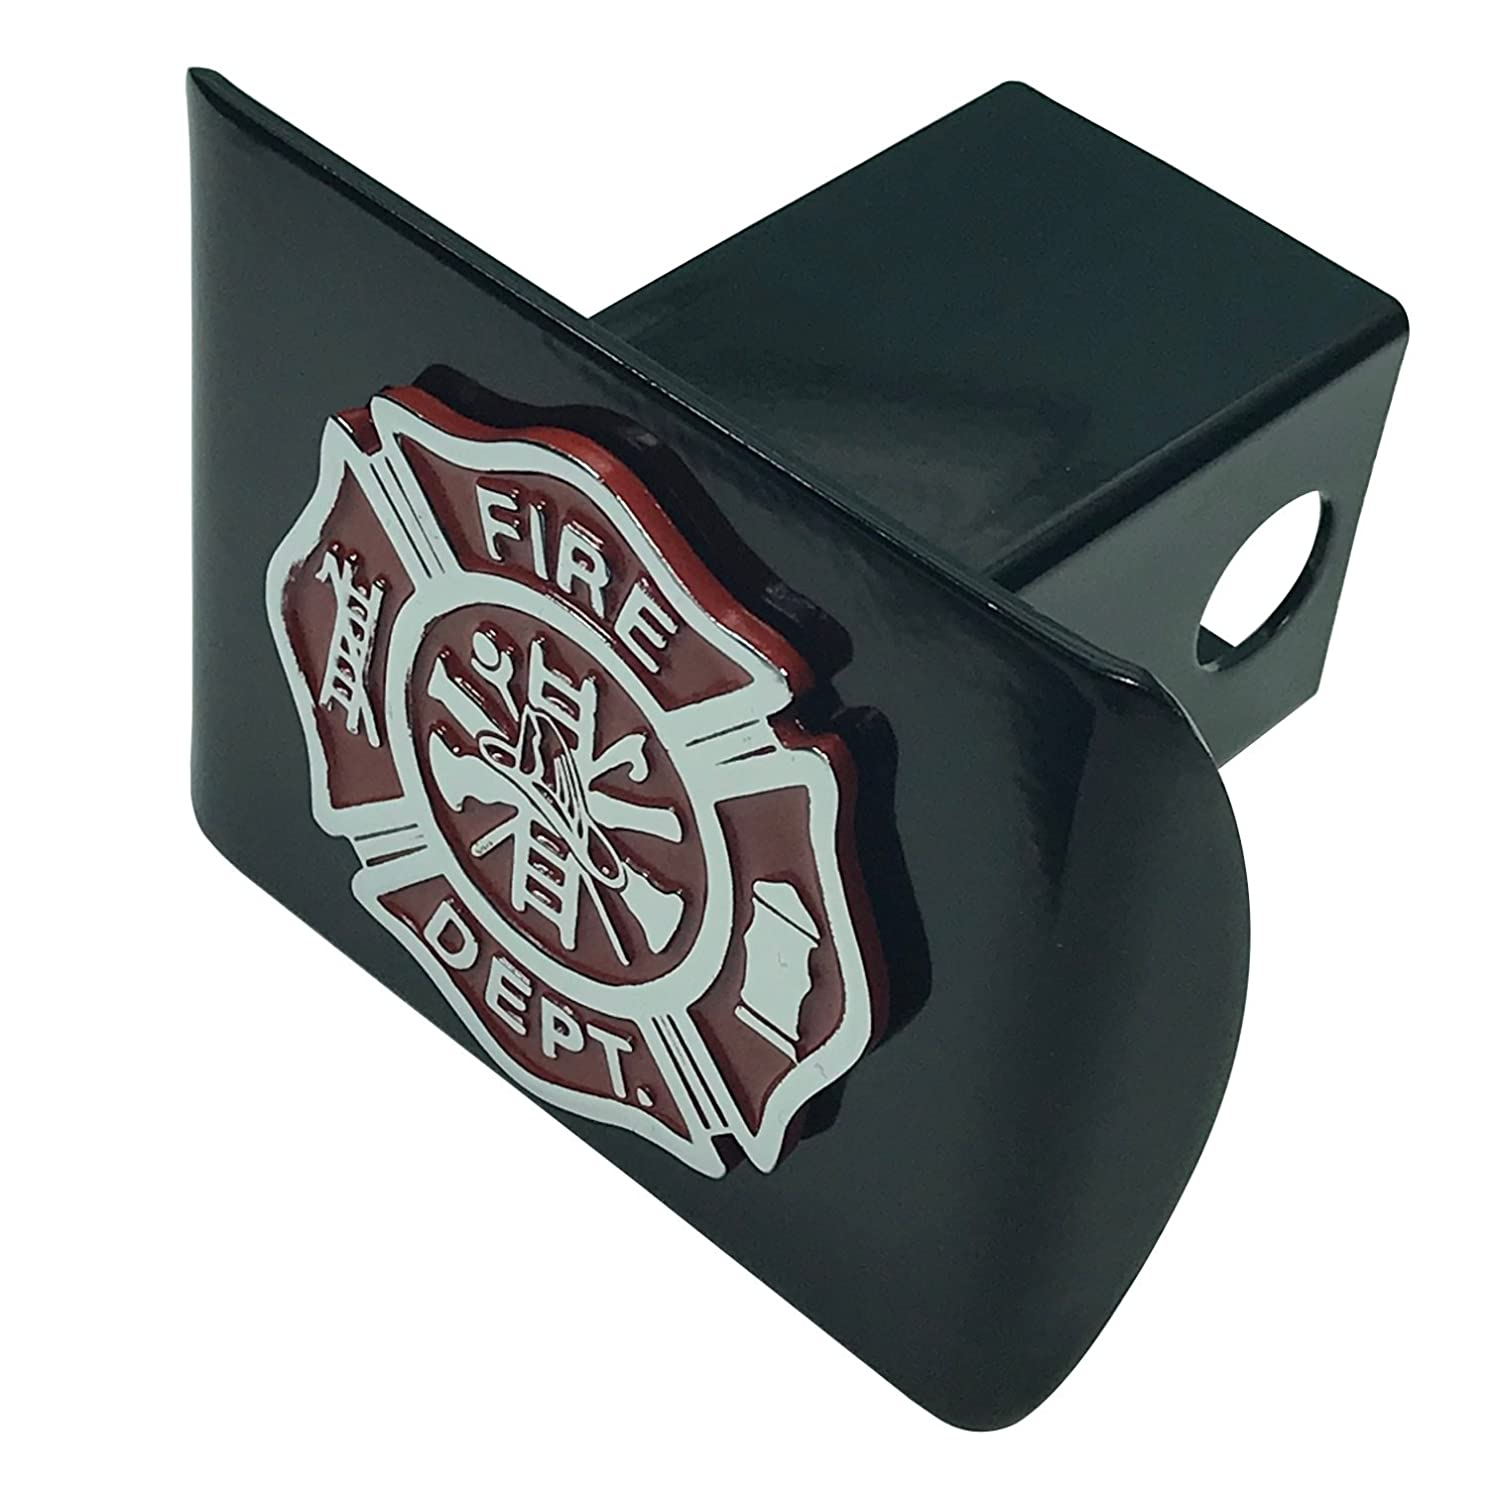 Support Firefighters METAL emblem (chrome & red) on black METAL Hitch Cover Fire AMG Auto Emblems